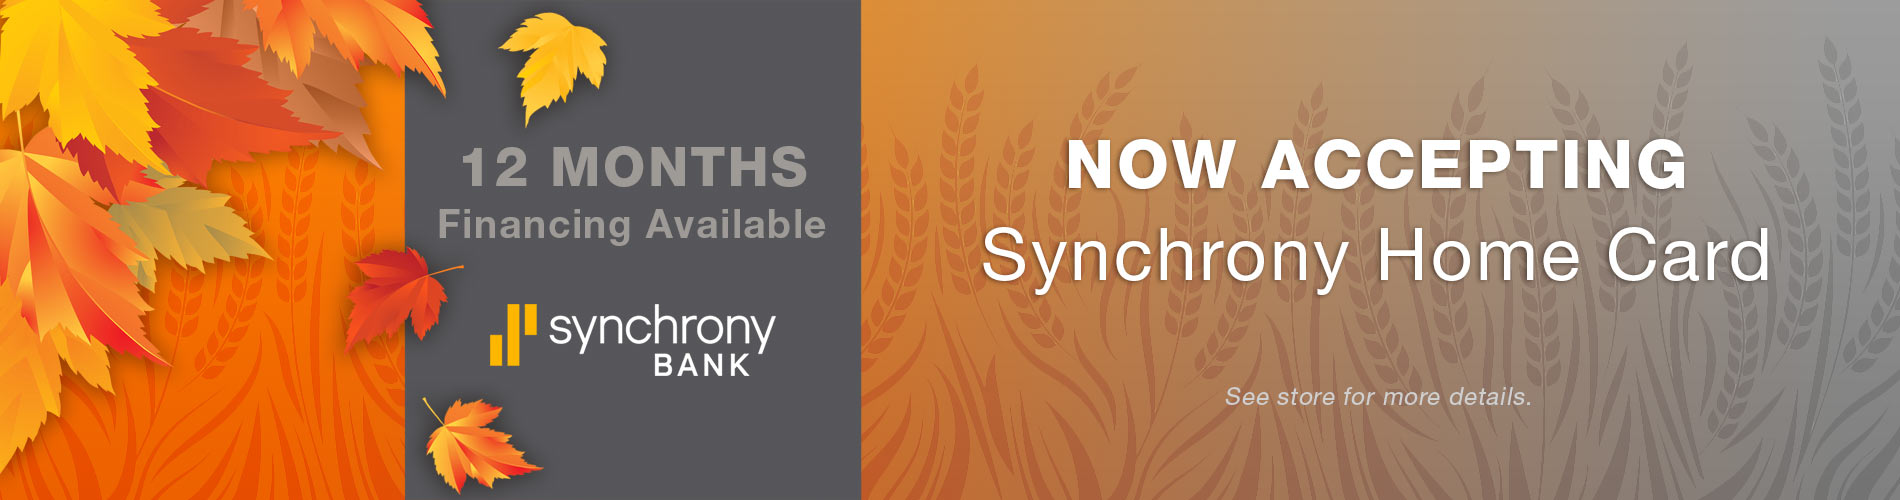 12 Months Interest Free Financing. Synchrony Bank. Now accepting Synchrony Home Card - See store for details.